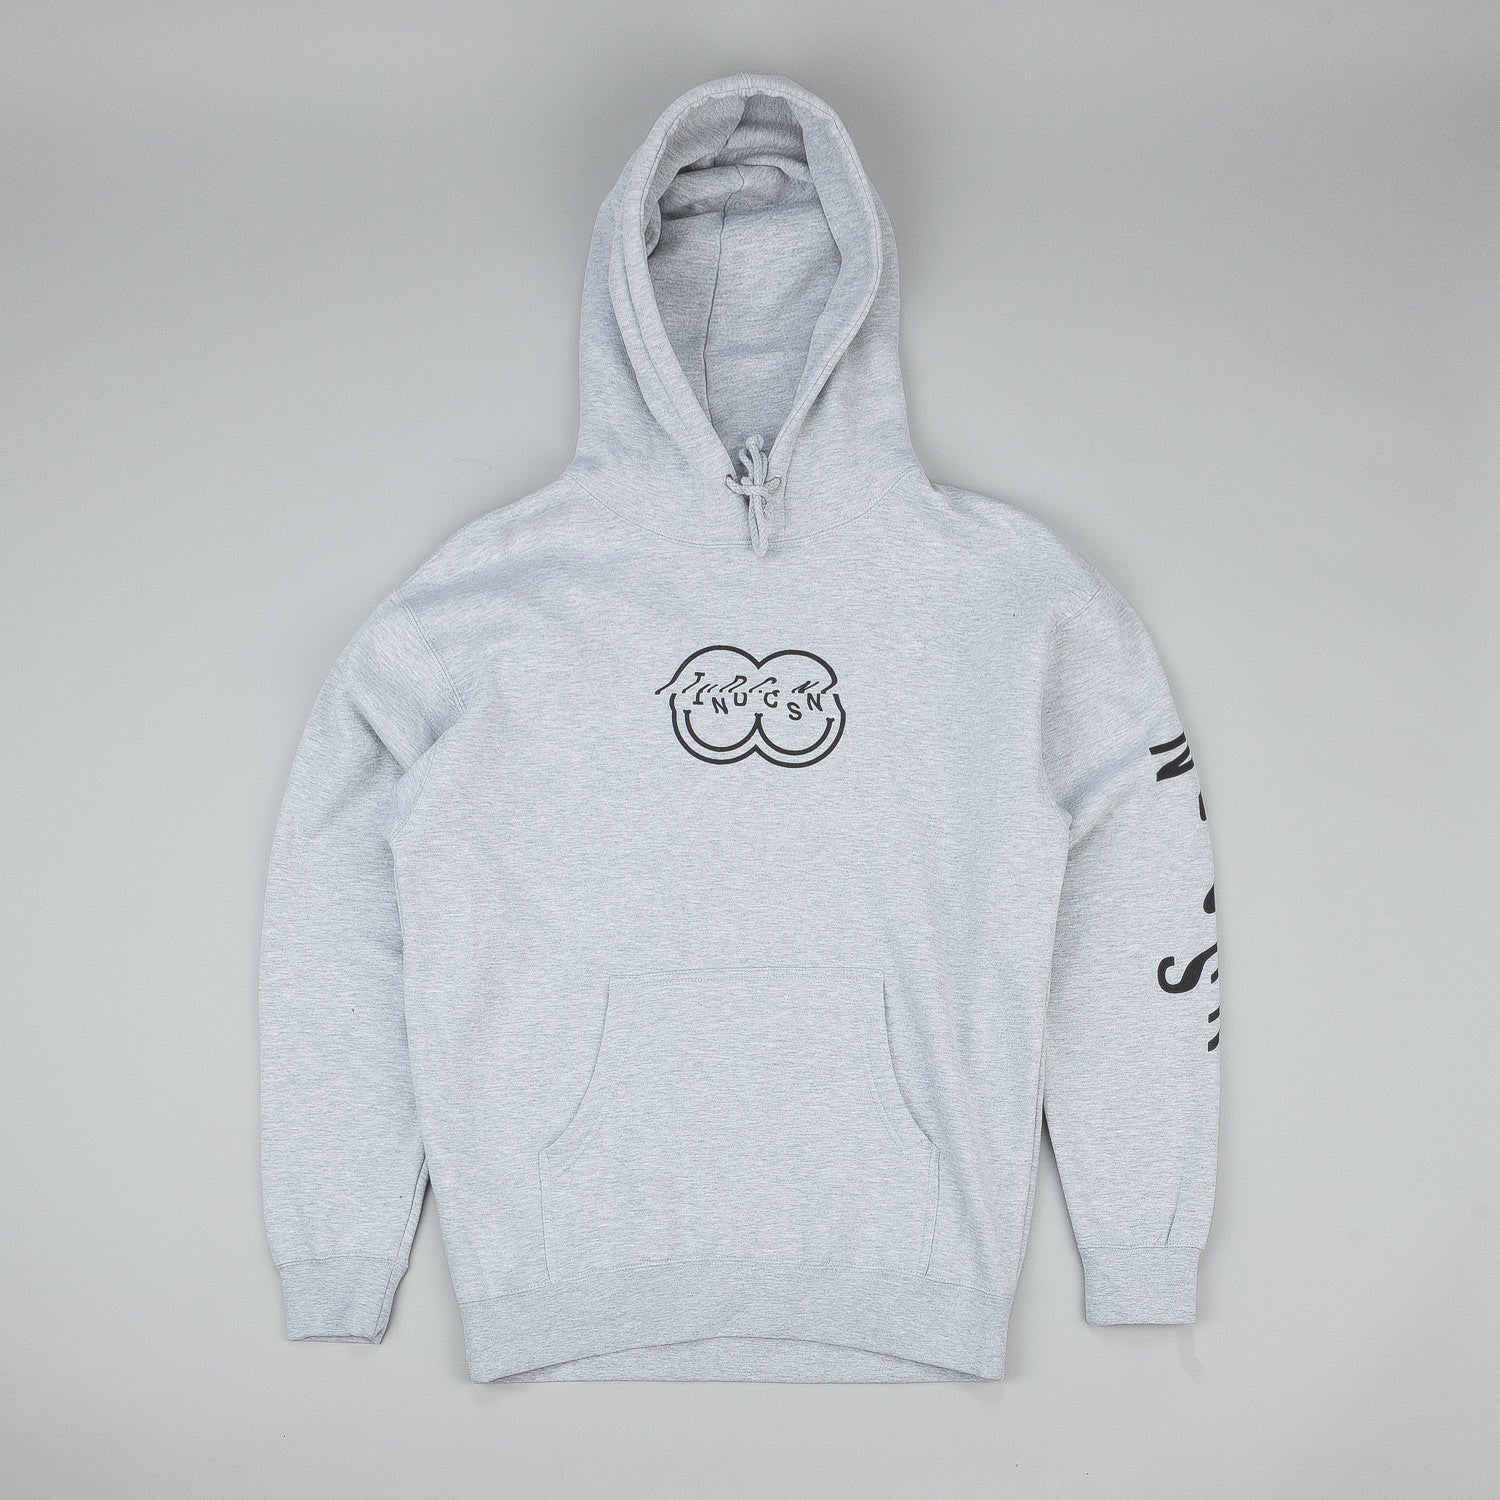 Indcsn Smxley Hooded Sweatshirt